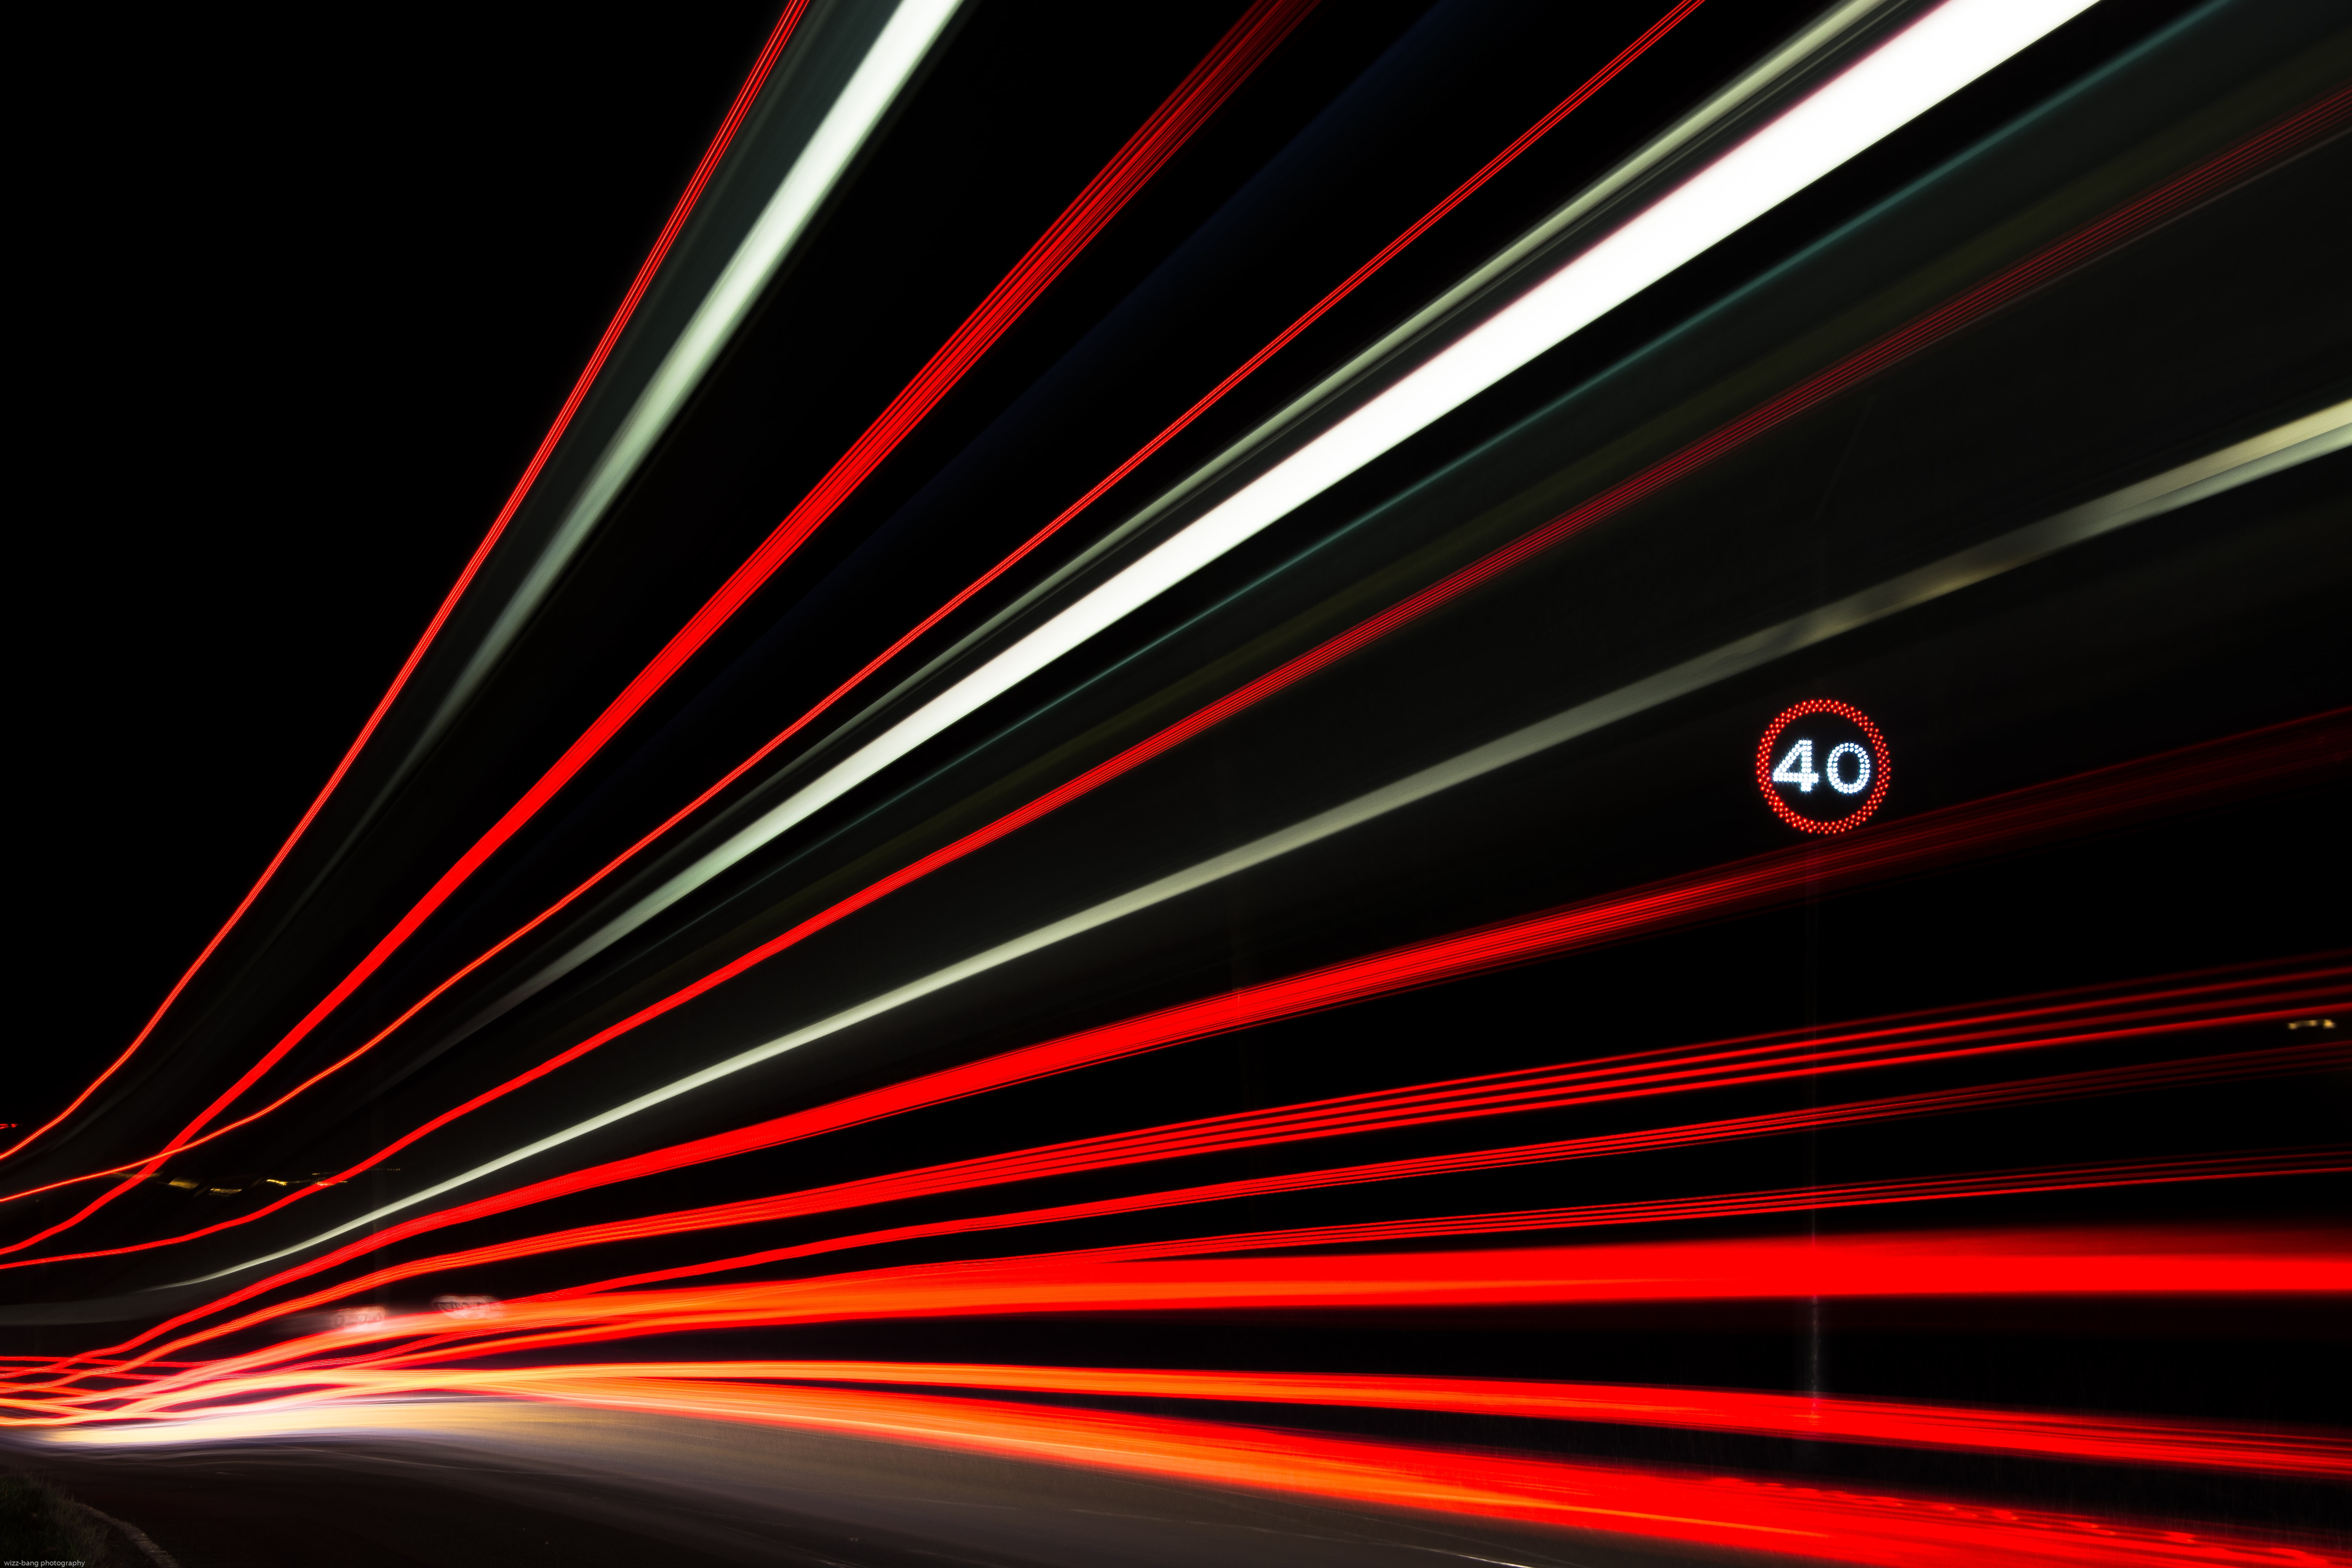 A long exposure shot of car taillights trailing in a timelapse down a dark road